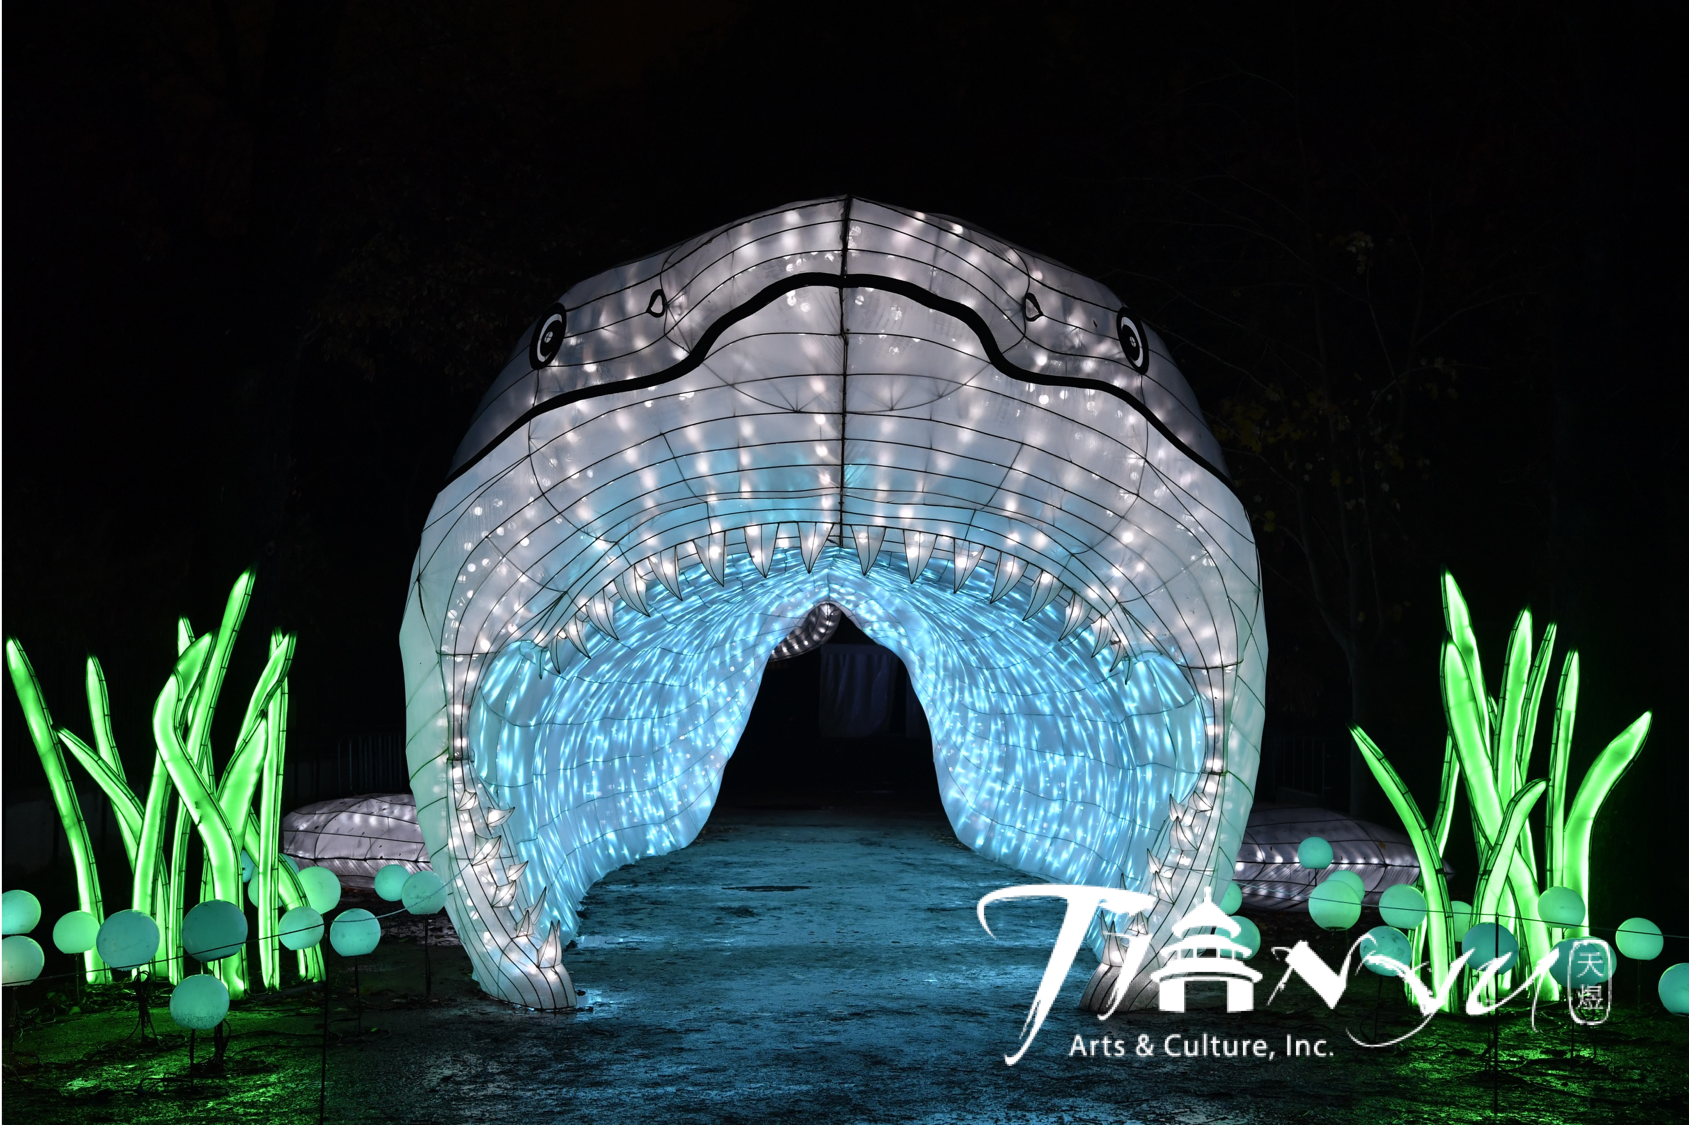 Walk into the mouth of a Chinese lantern great white shark.